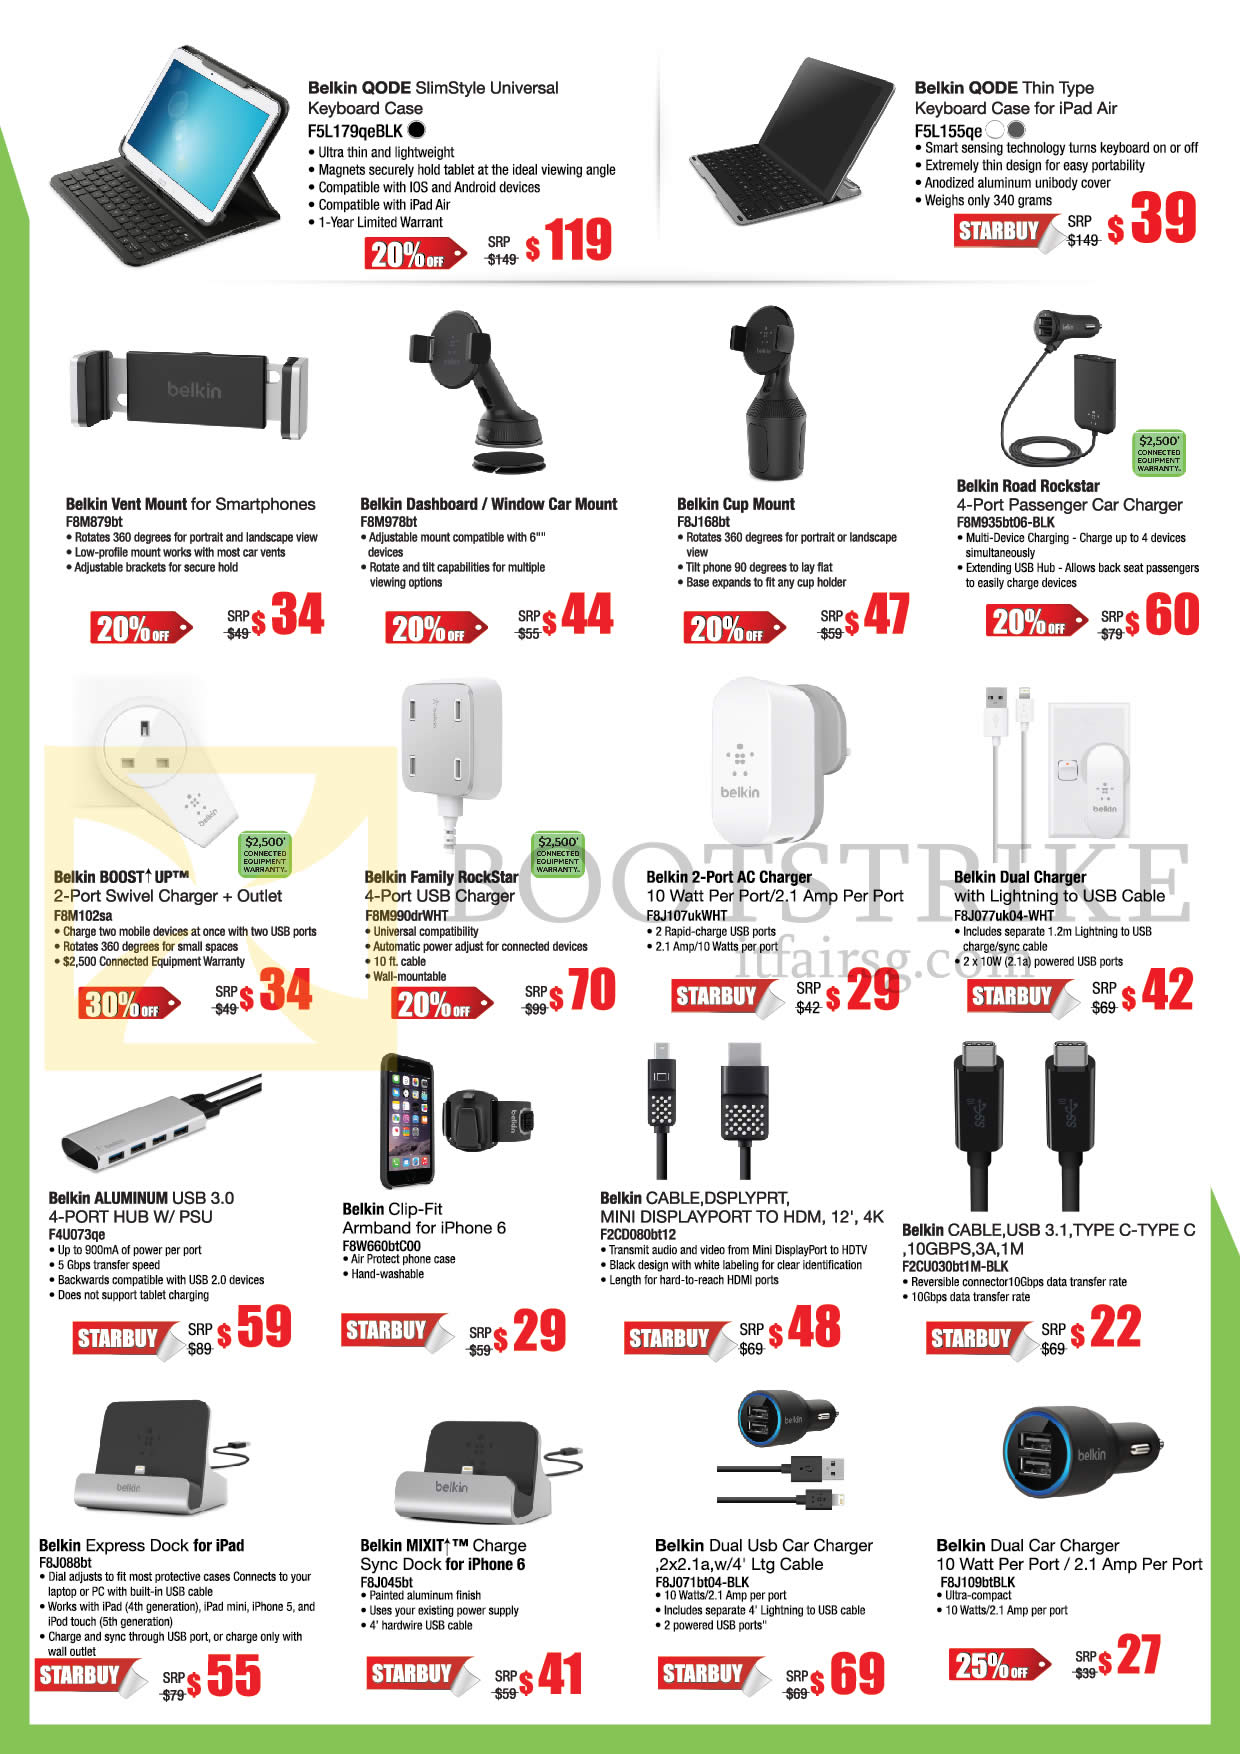 COMEX 2016 price list image brochure of Belkin Chargers, Cables, Car Mount, Cases, Qode Slimstyle Universal, Qode Thin Type Keyboard Case, Vent Mount, Cup Mount, Road Rockstar, Boost Up, Family Rockstar, 2 Port AC Charger